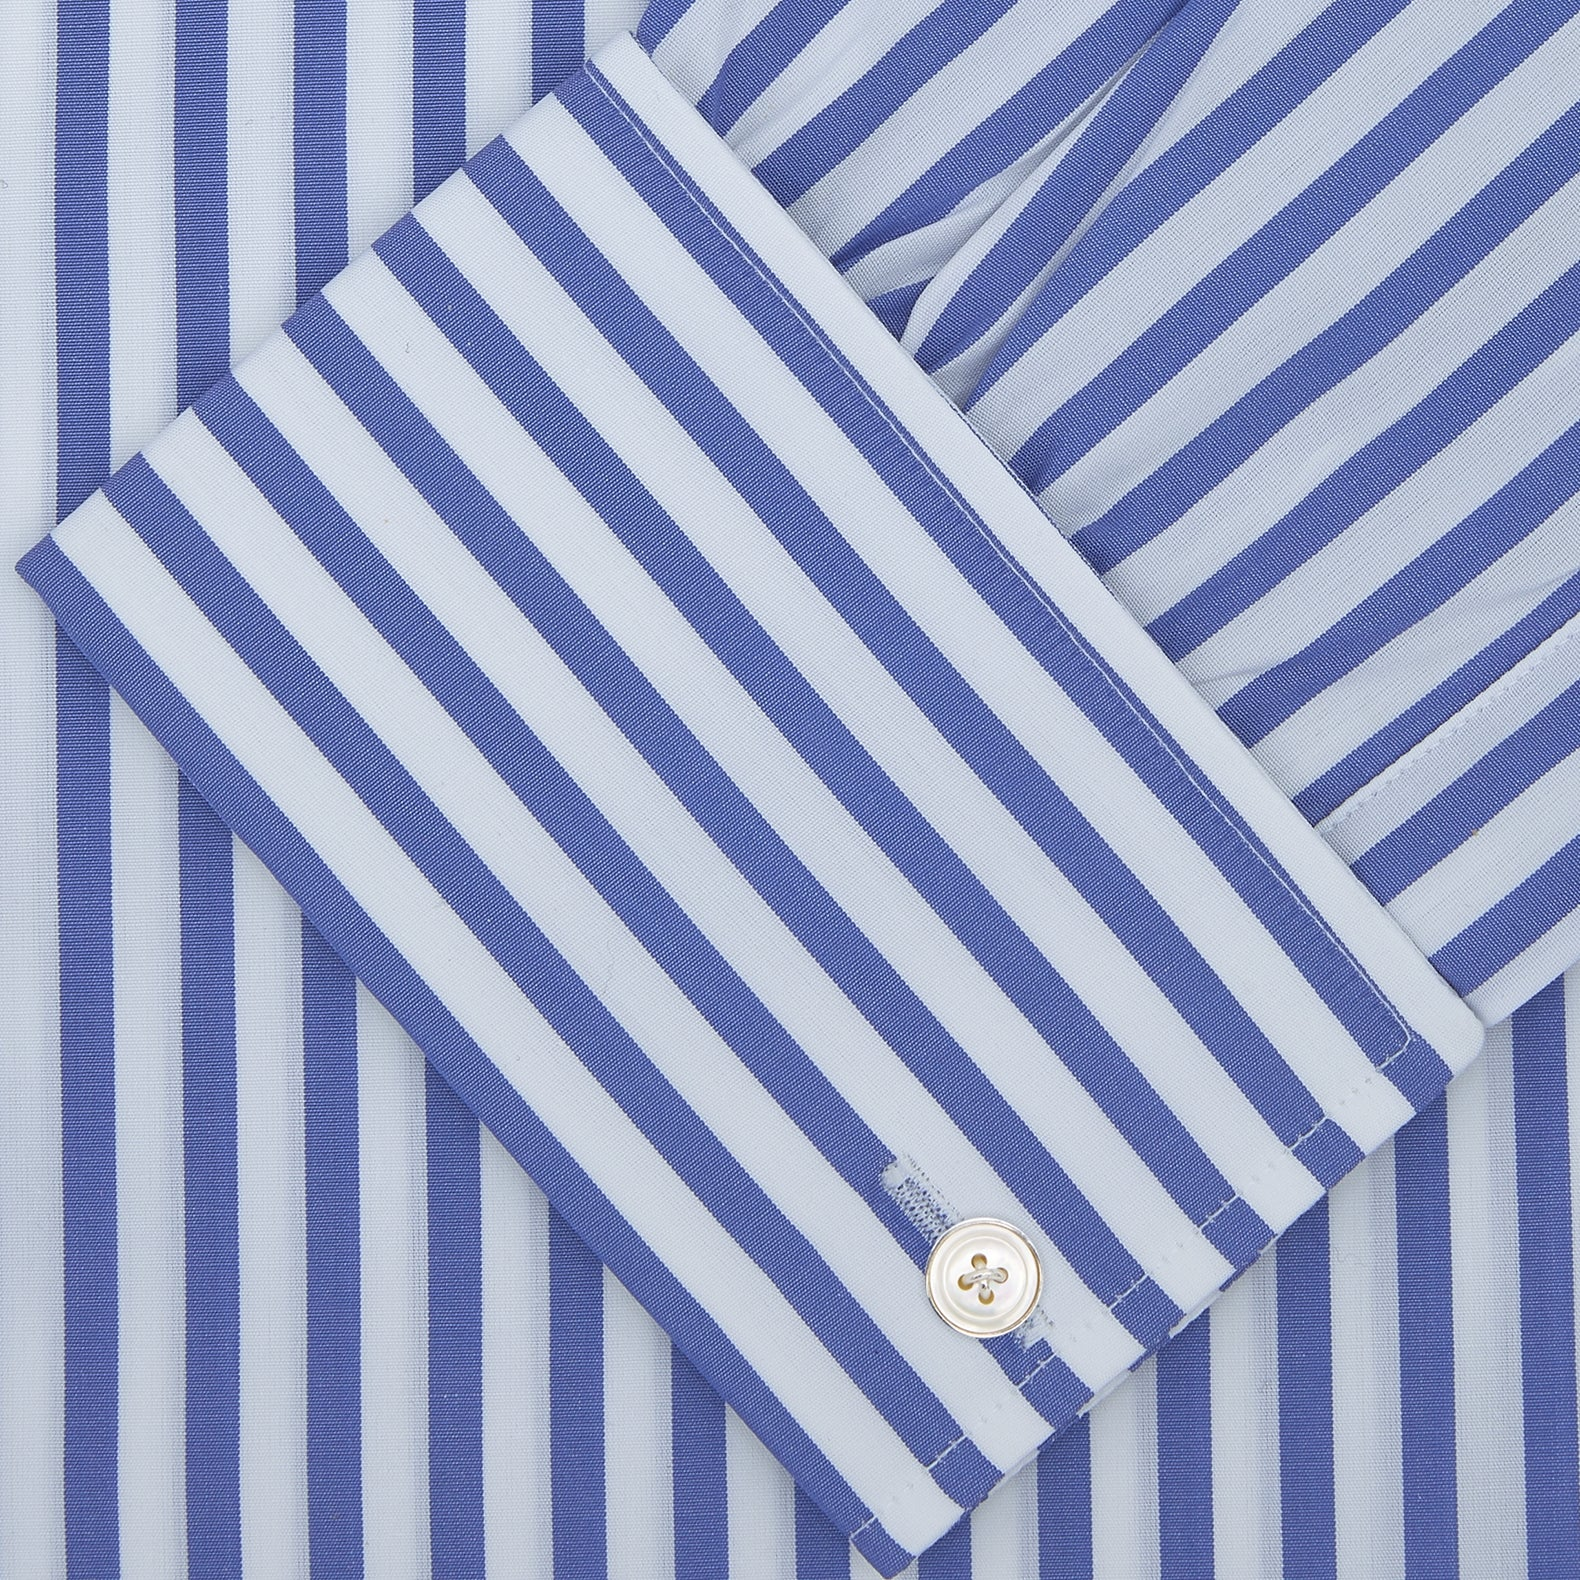 Blue and White Candy Stripe Shirt with Regent Collar and Double Cuffs